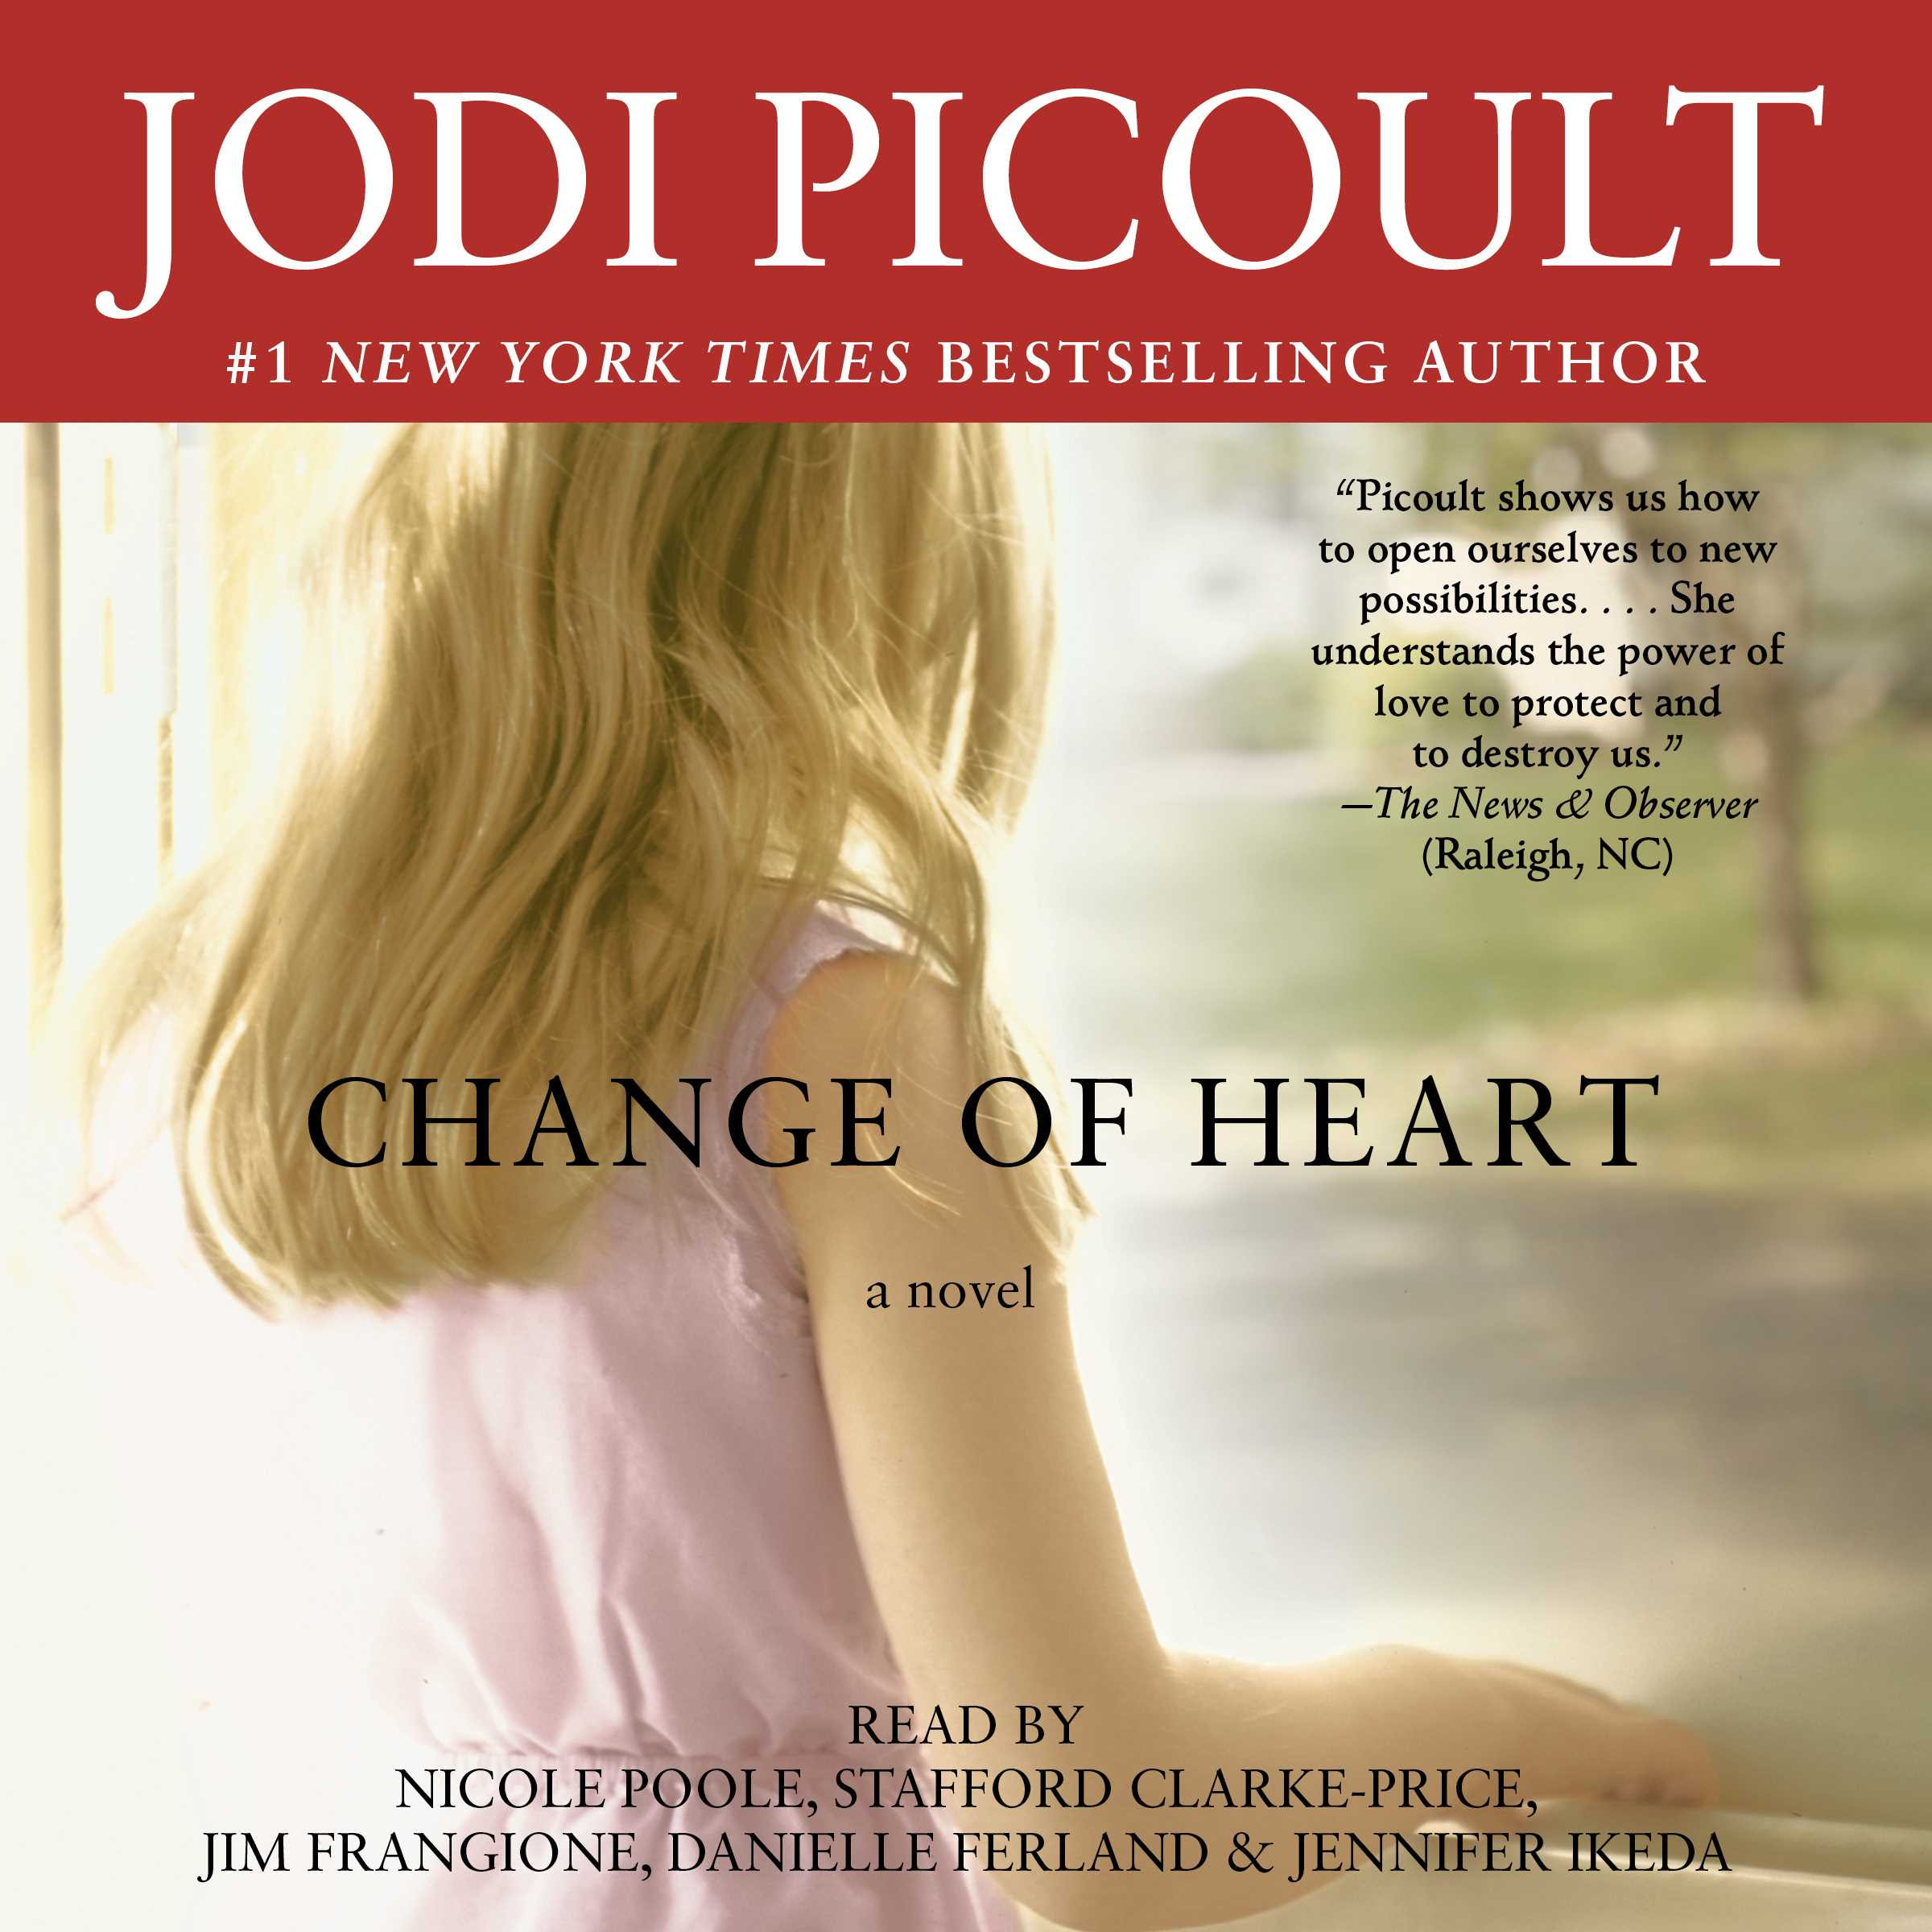 Book Cover Image (jpg): Change of Heart